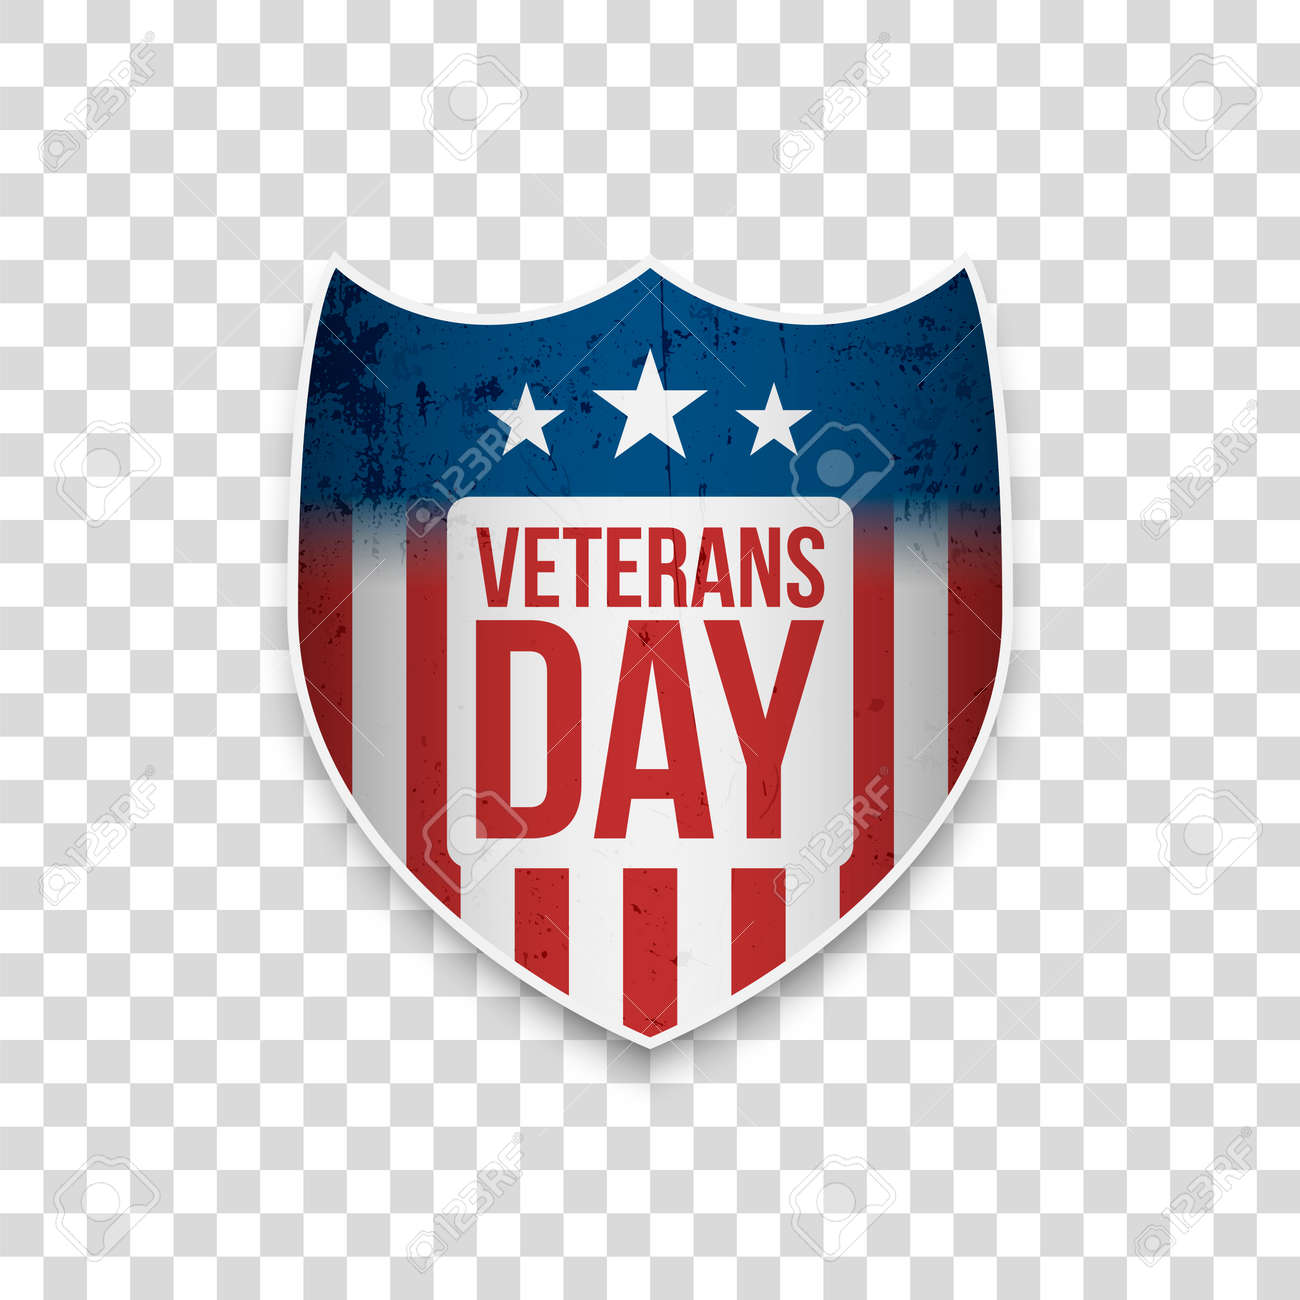 Veterans Day Sale Greeting Shield With Text Royalty Free Cliparts